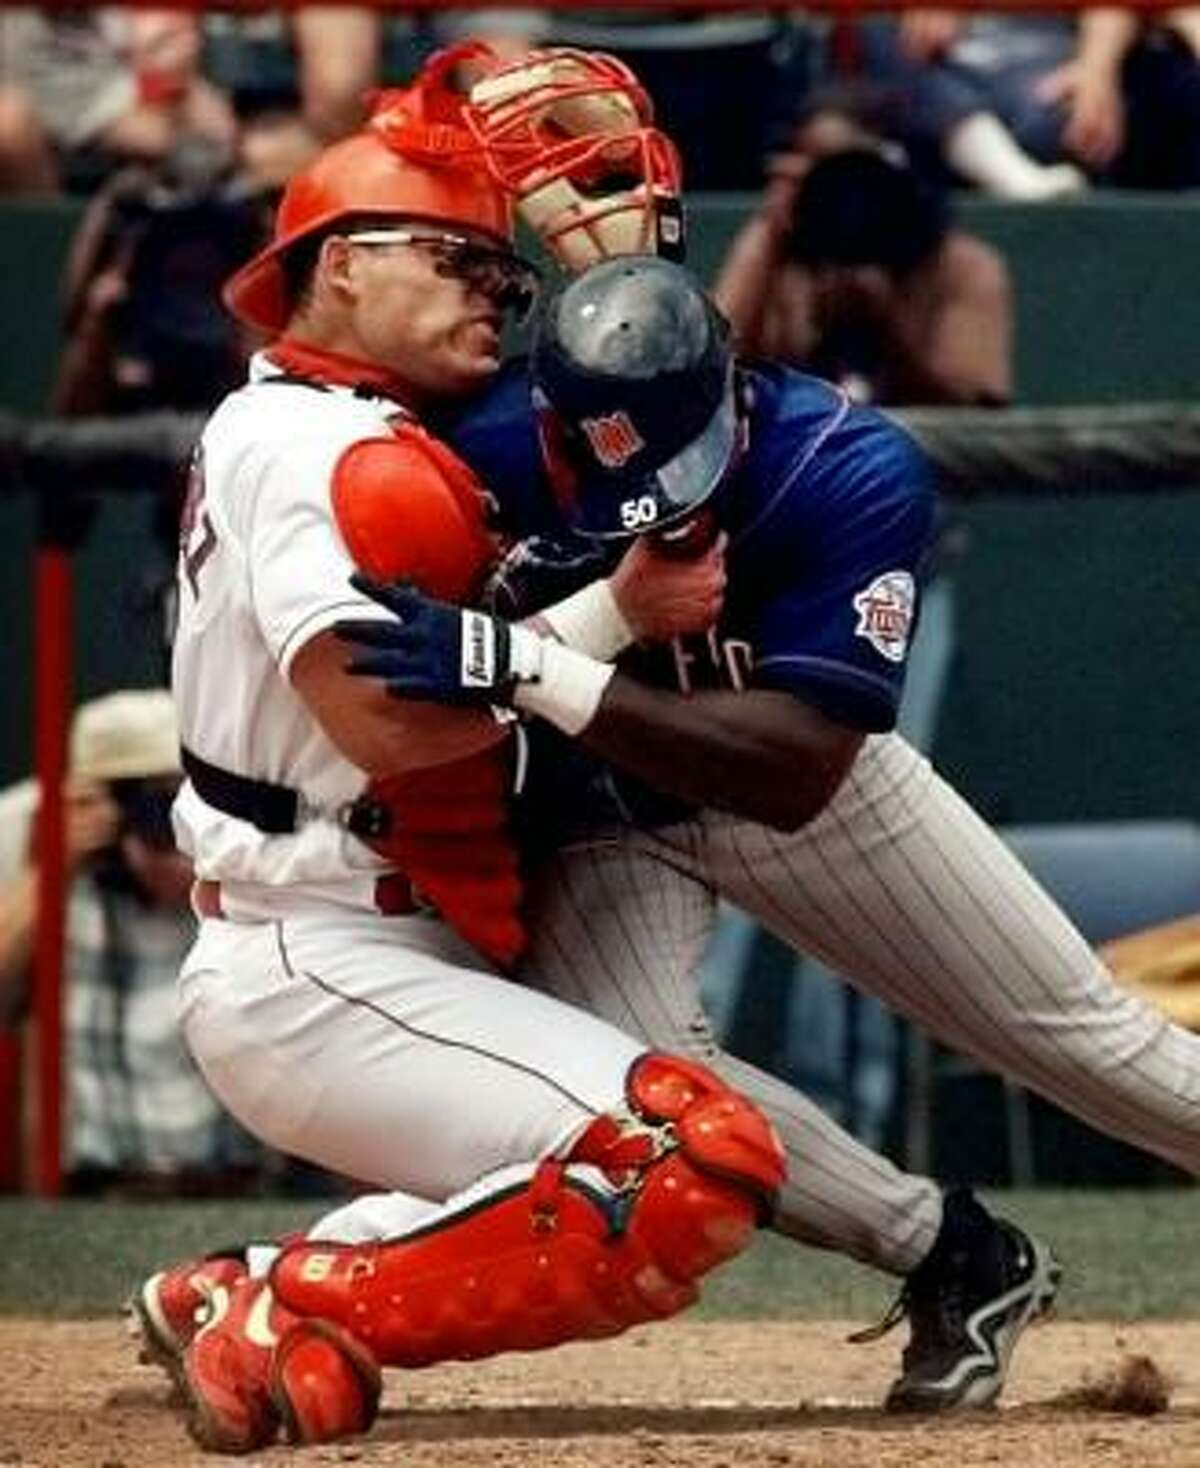 1998: Rodriguez shows his durability, shaking off a collision with the Twins' Matt Lawton, left, during a four-year run with Texas in which he played at least 144 games each season.